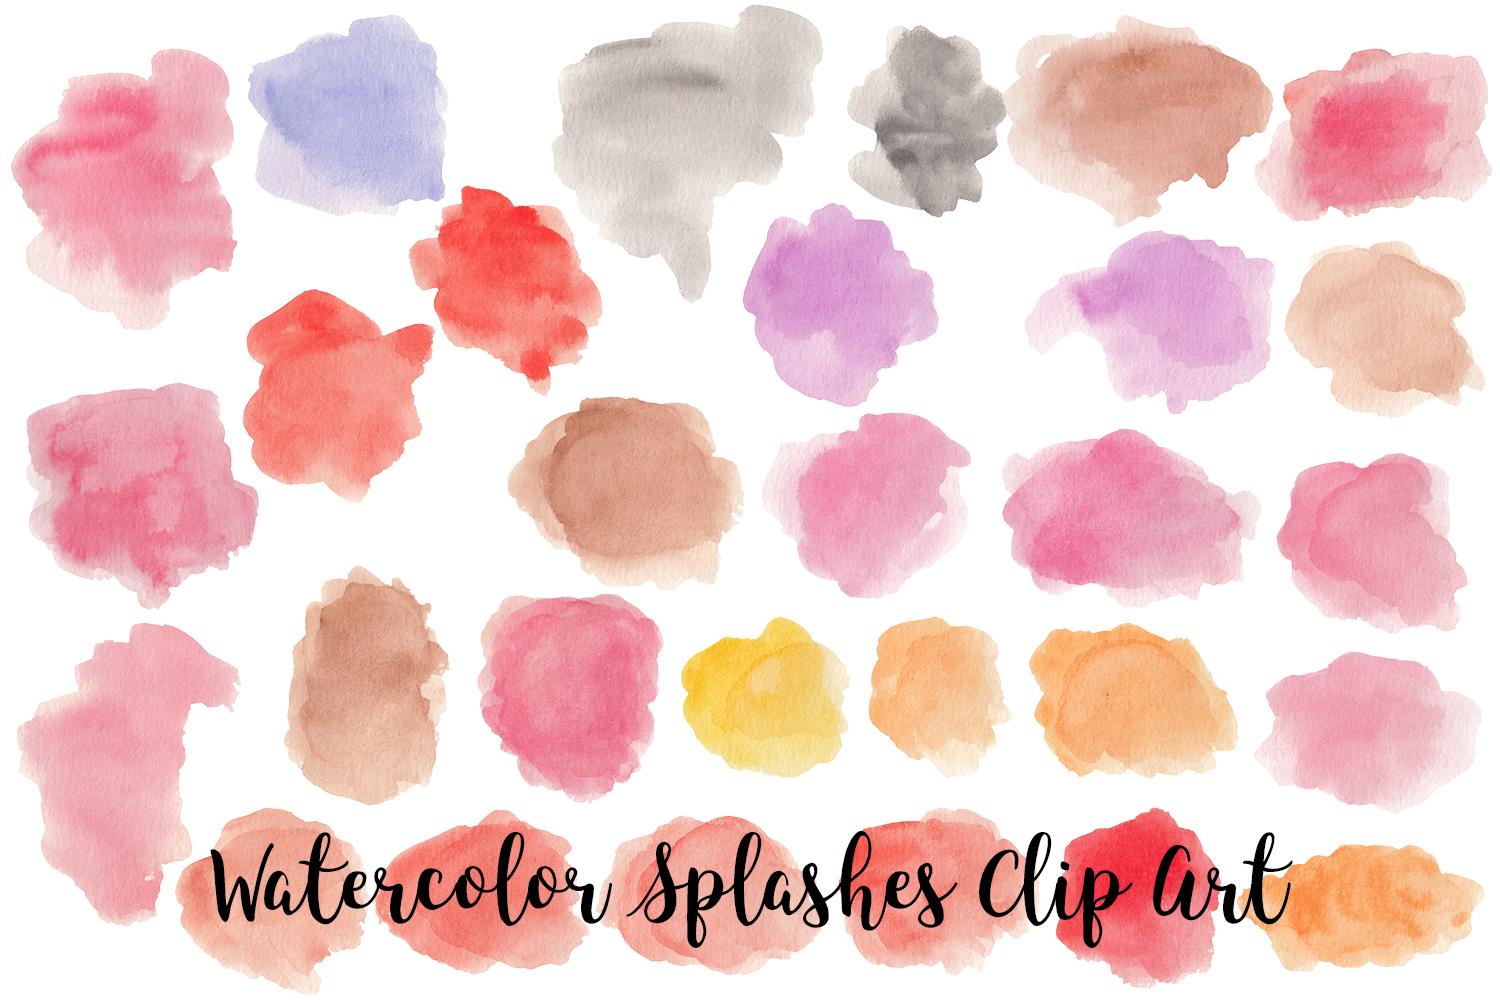 Watercolor Splashes Clip Art, Transparent PNG example image 3